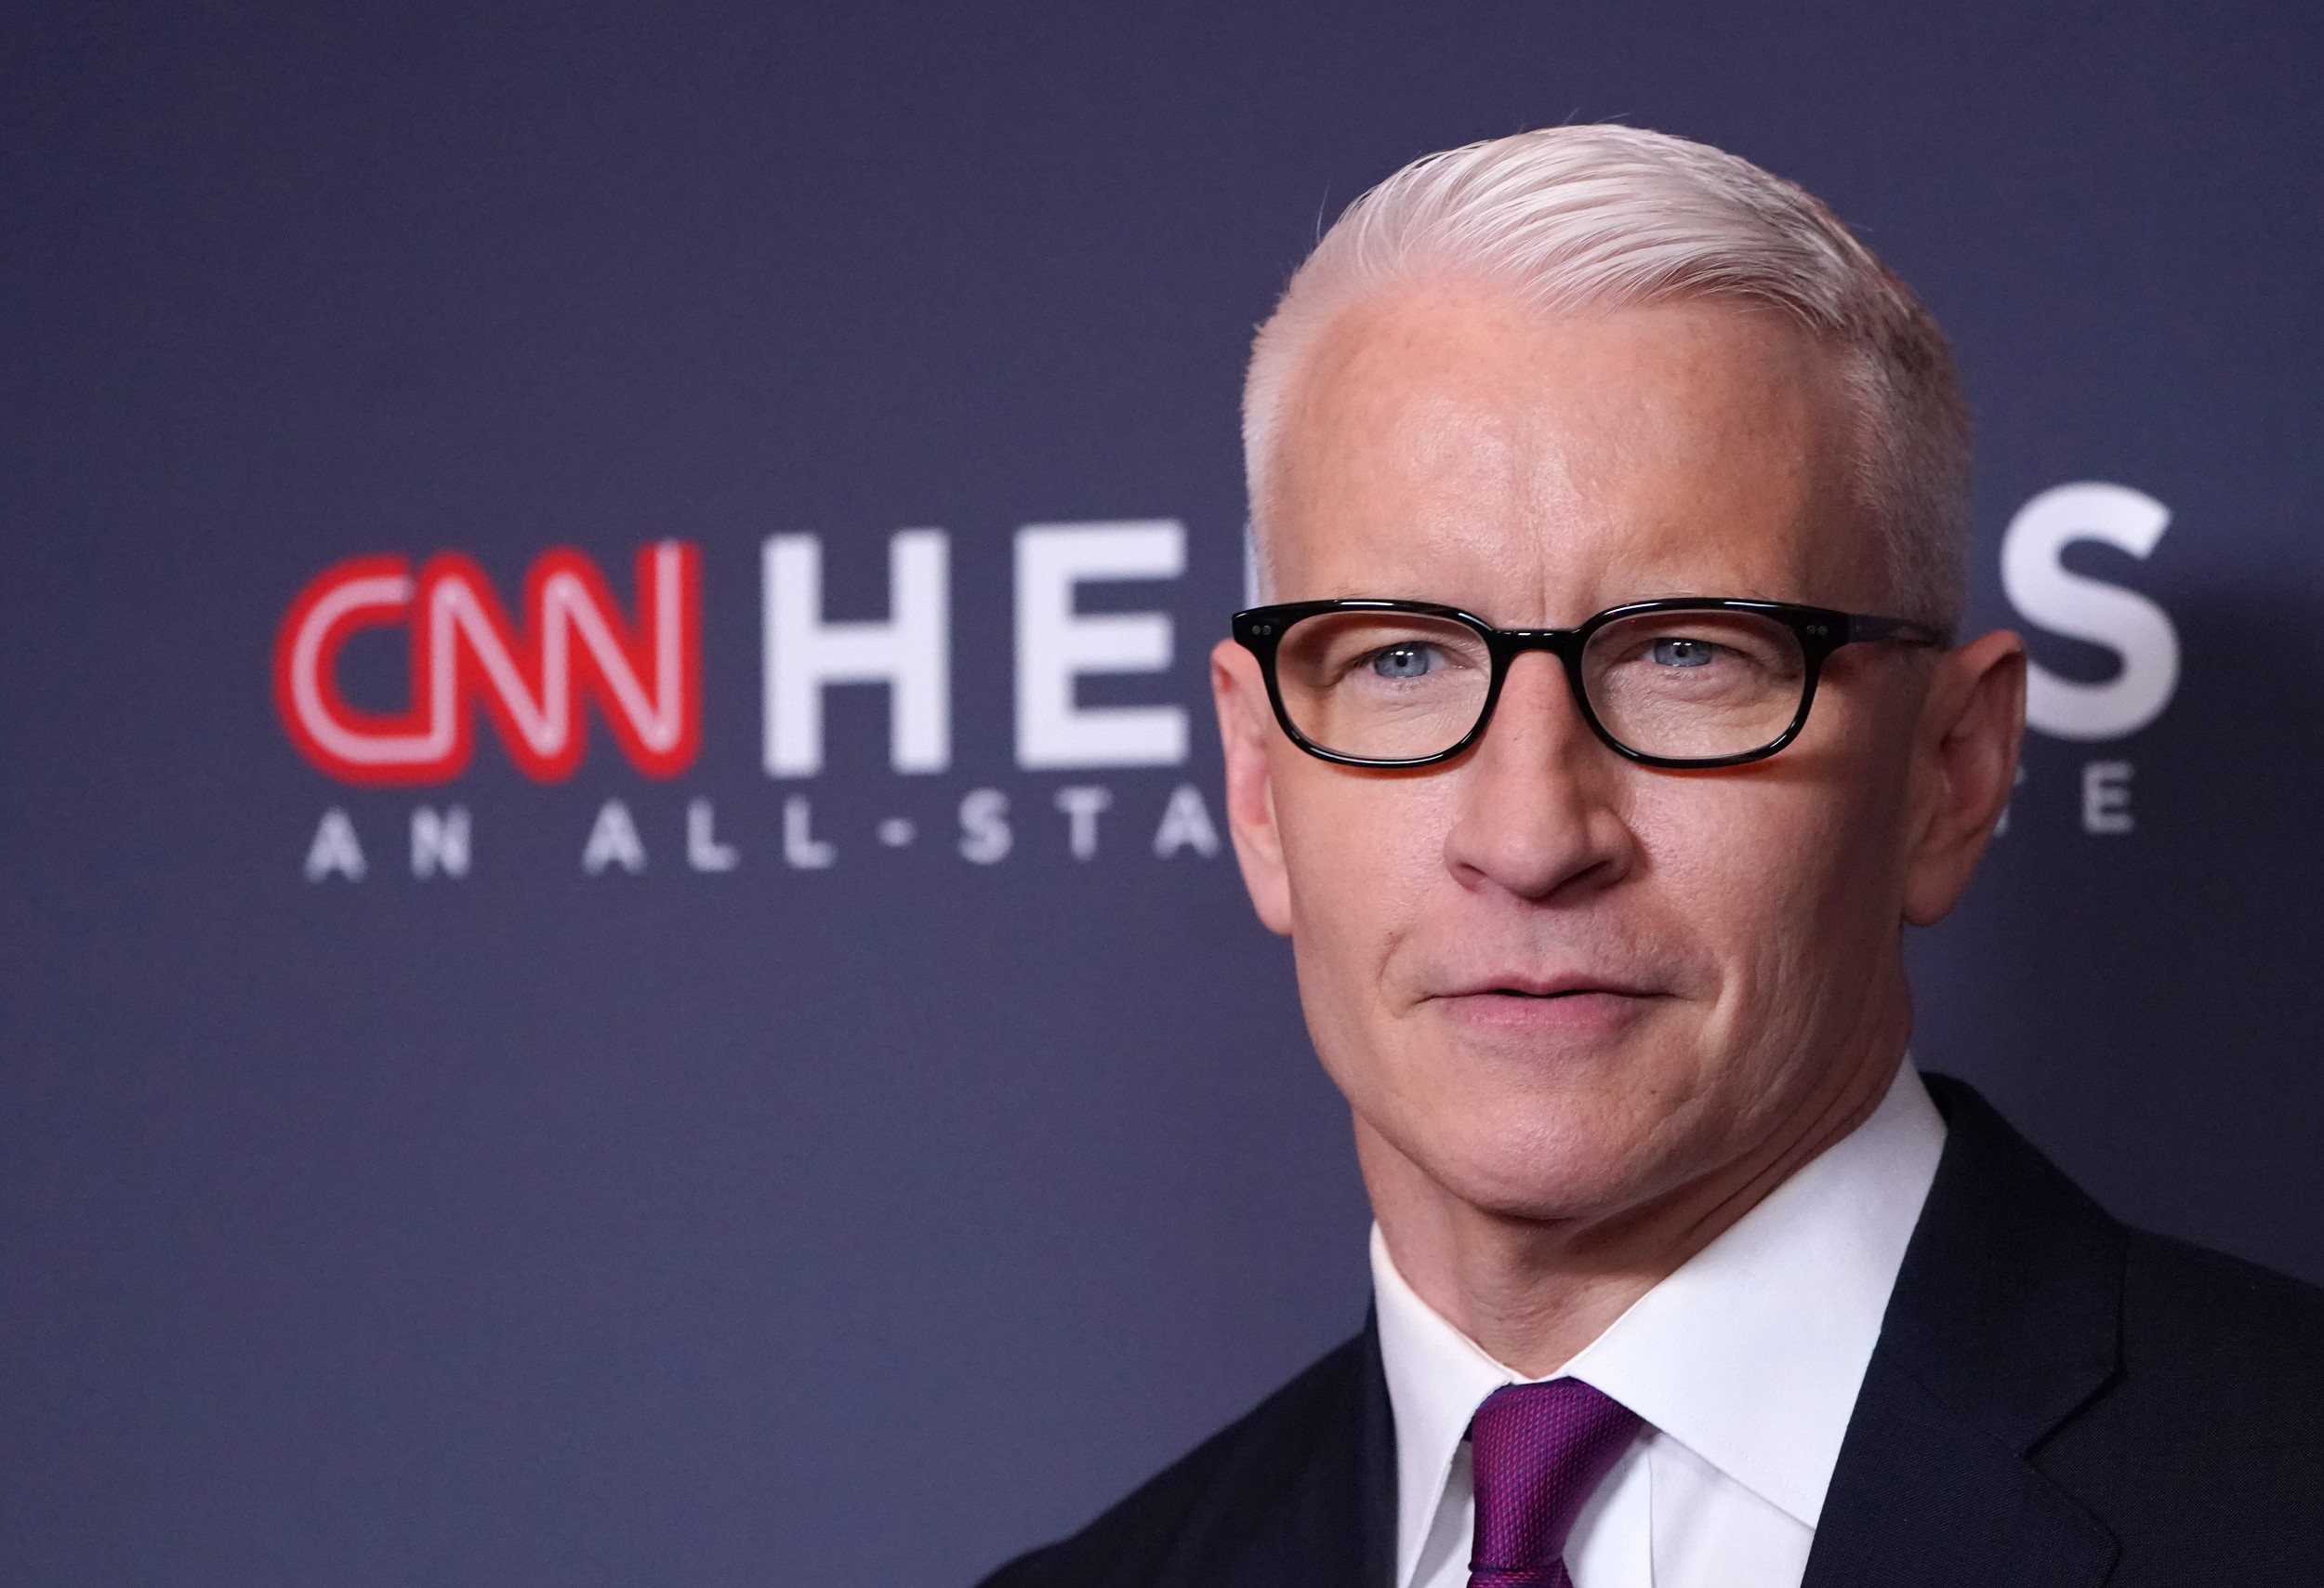 My Pillow Creator Michael Lindell Threatens CNN with Apt Redress Over Anderson Cooper Interview